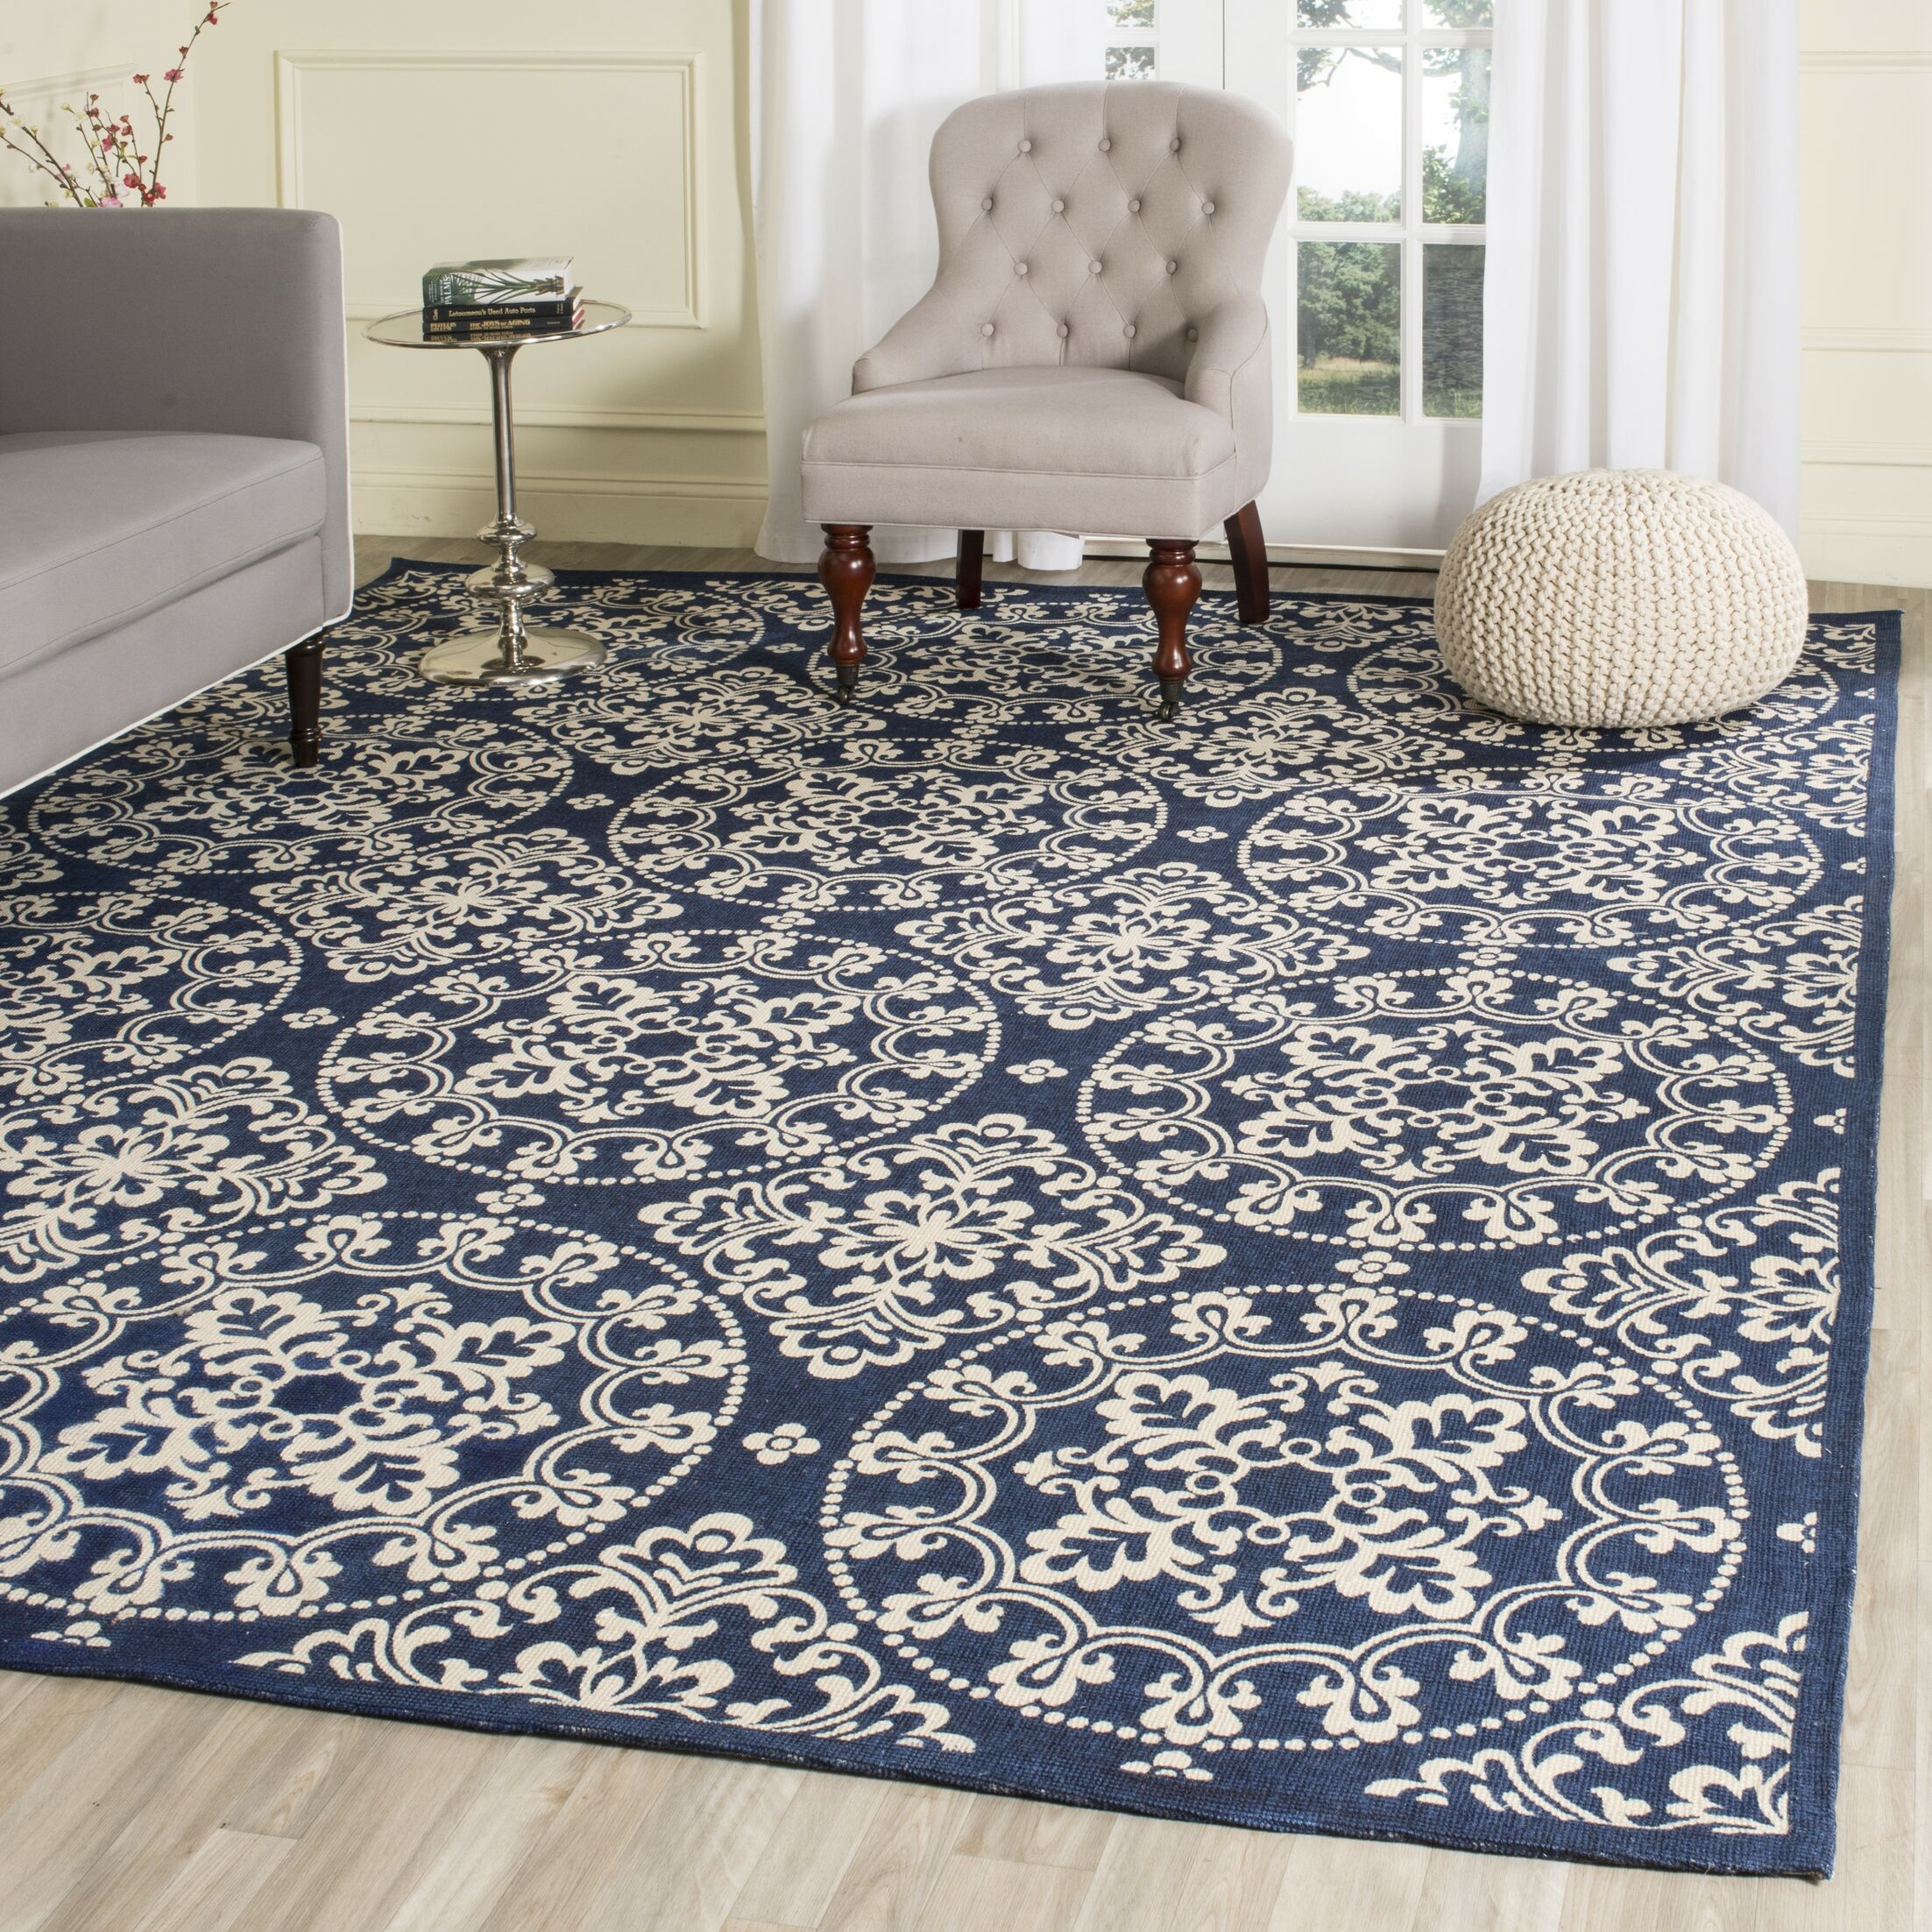 Charing Cross Hand-Loomed Navy / Natural Area Rug Rug Size: Square 6' x 6'